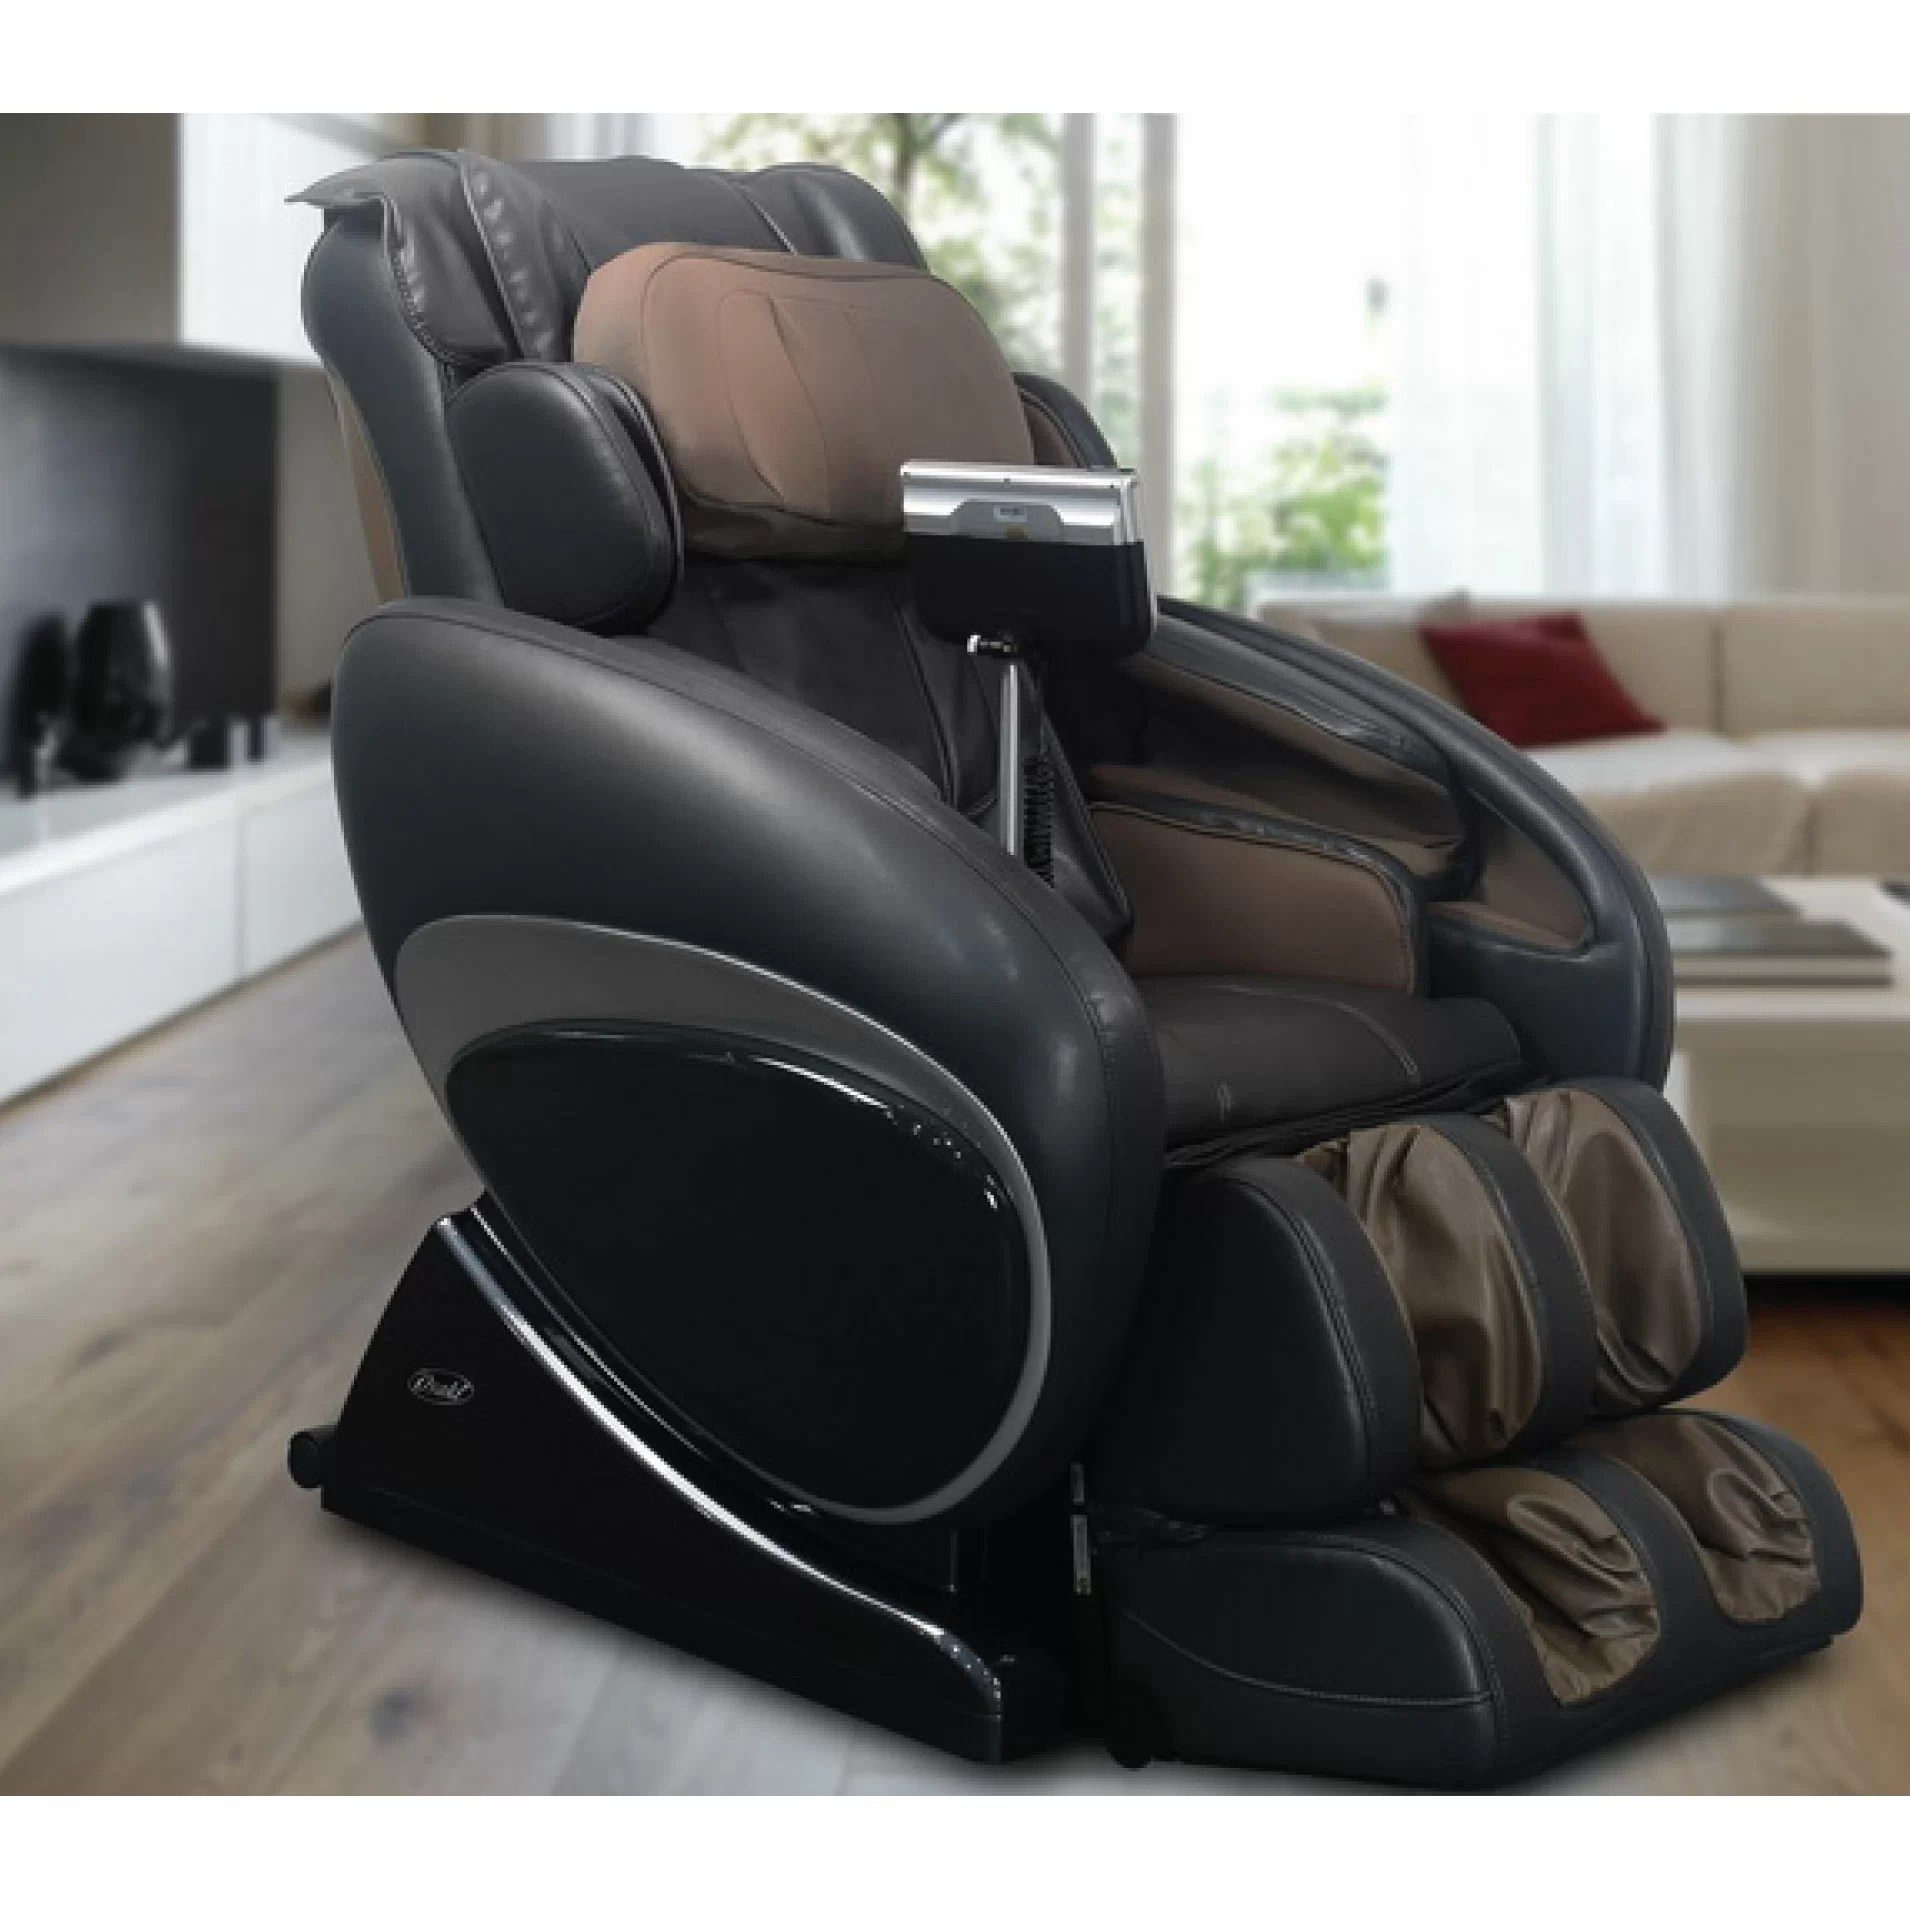 Top Rated Massage Chairs Osaki Os 4000 Zero Gravity Heated Reclining Massage Chair